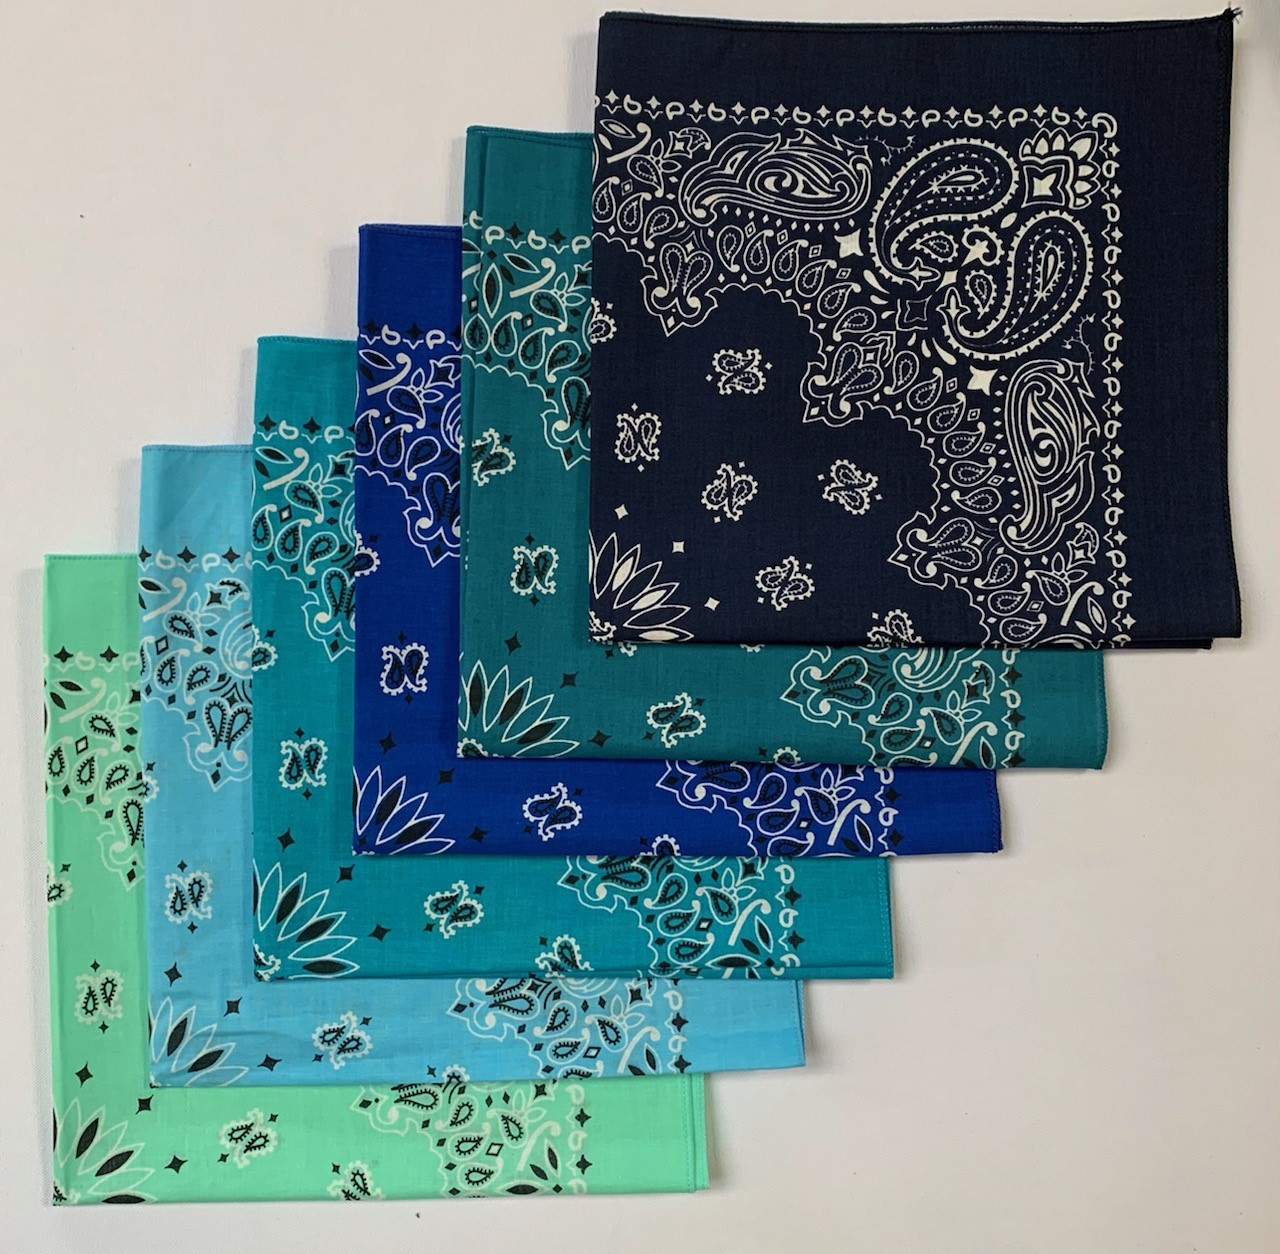 "Paisley Bandanas USA Made Assorted 22"" x 22"" - 6 Pack As Shown"